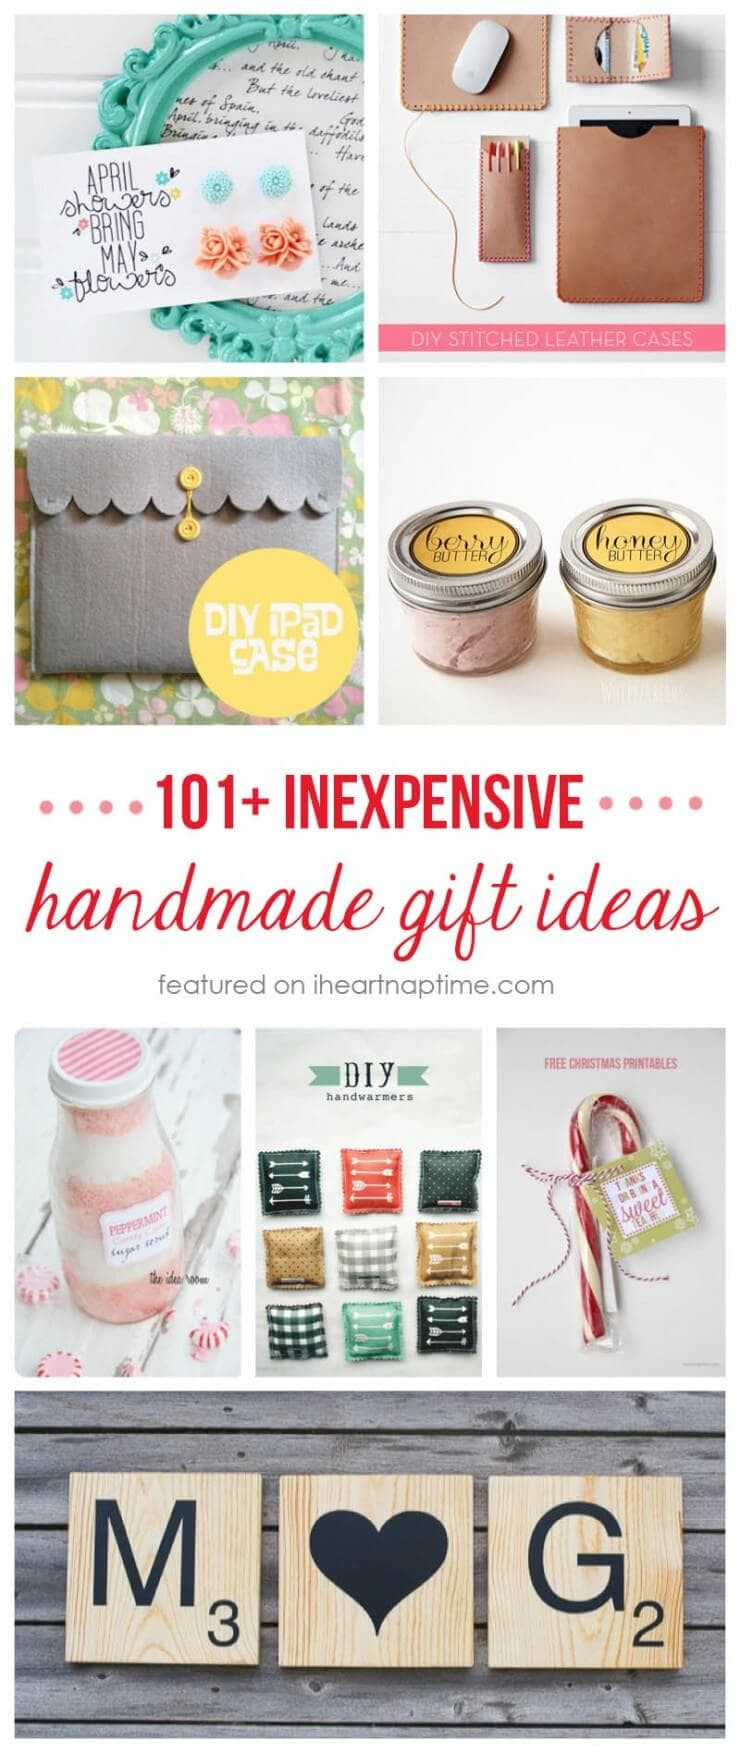 Best ideas about Easy Homemade Gift Ideas . Save or Pin 50 homemade t ideas to make for under $5 I Heart Nap Time Now.